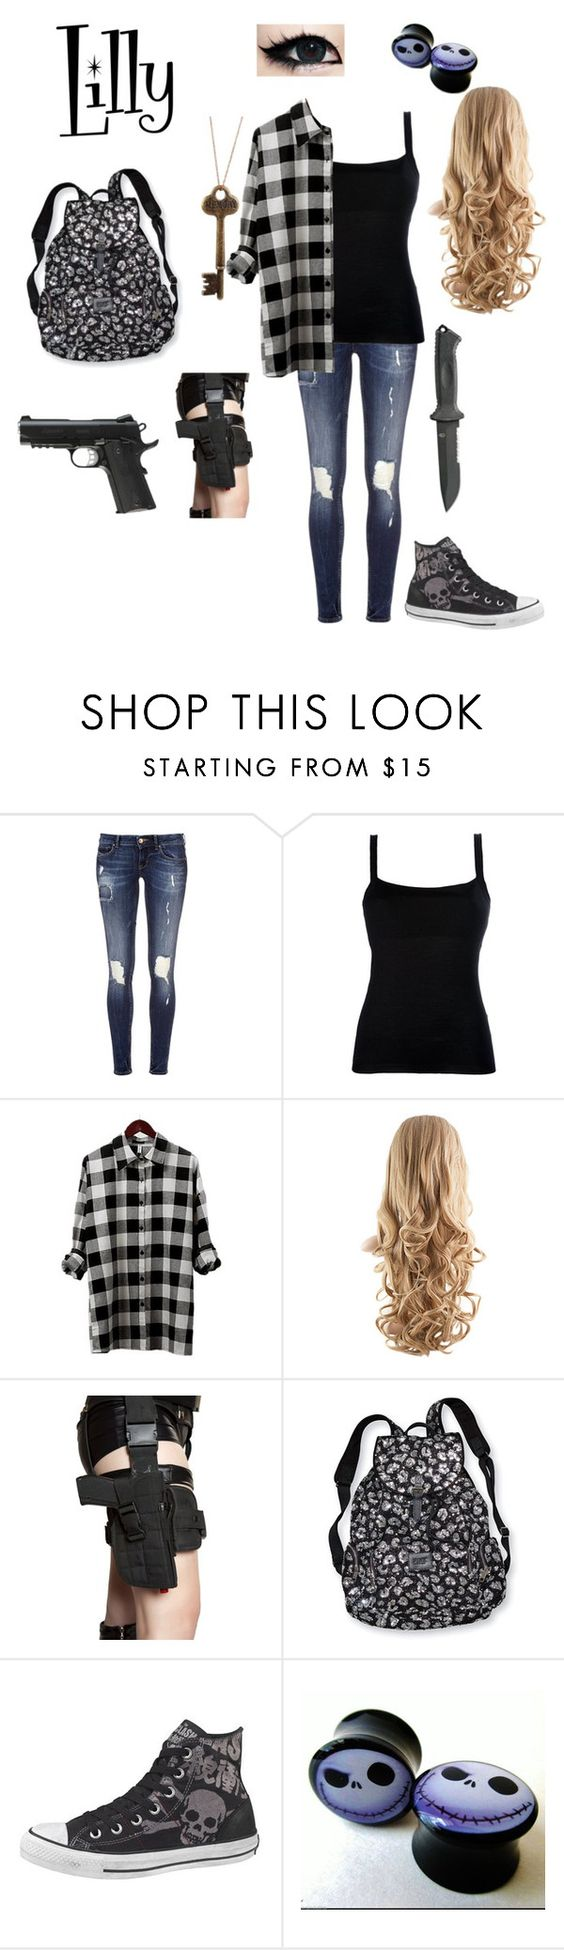 """""""Untitled #101"""" by little-one1228 ❤ liked on Polyvore featuring Valentino, Gerber, Victoria's Secret and Converse"""